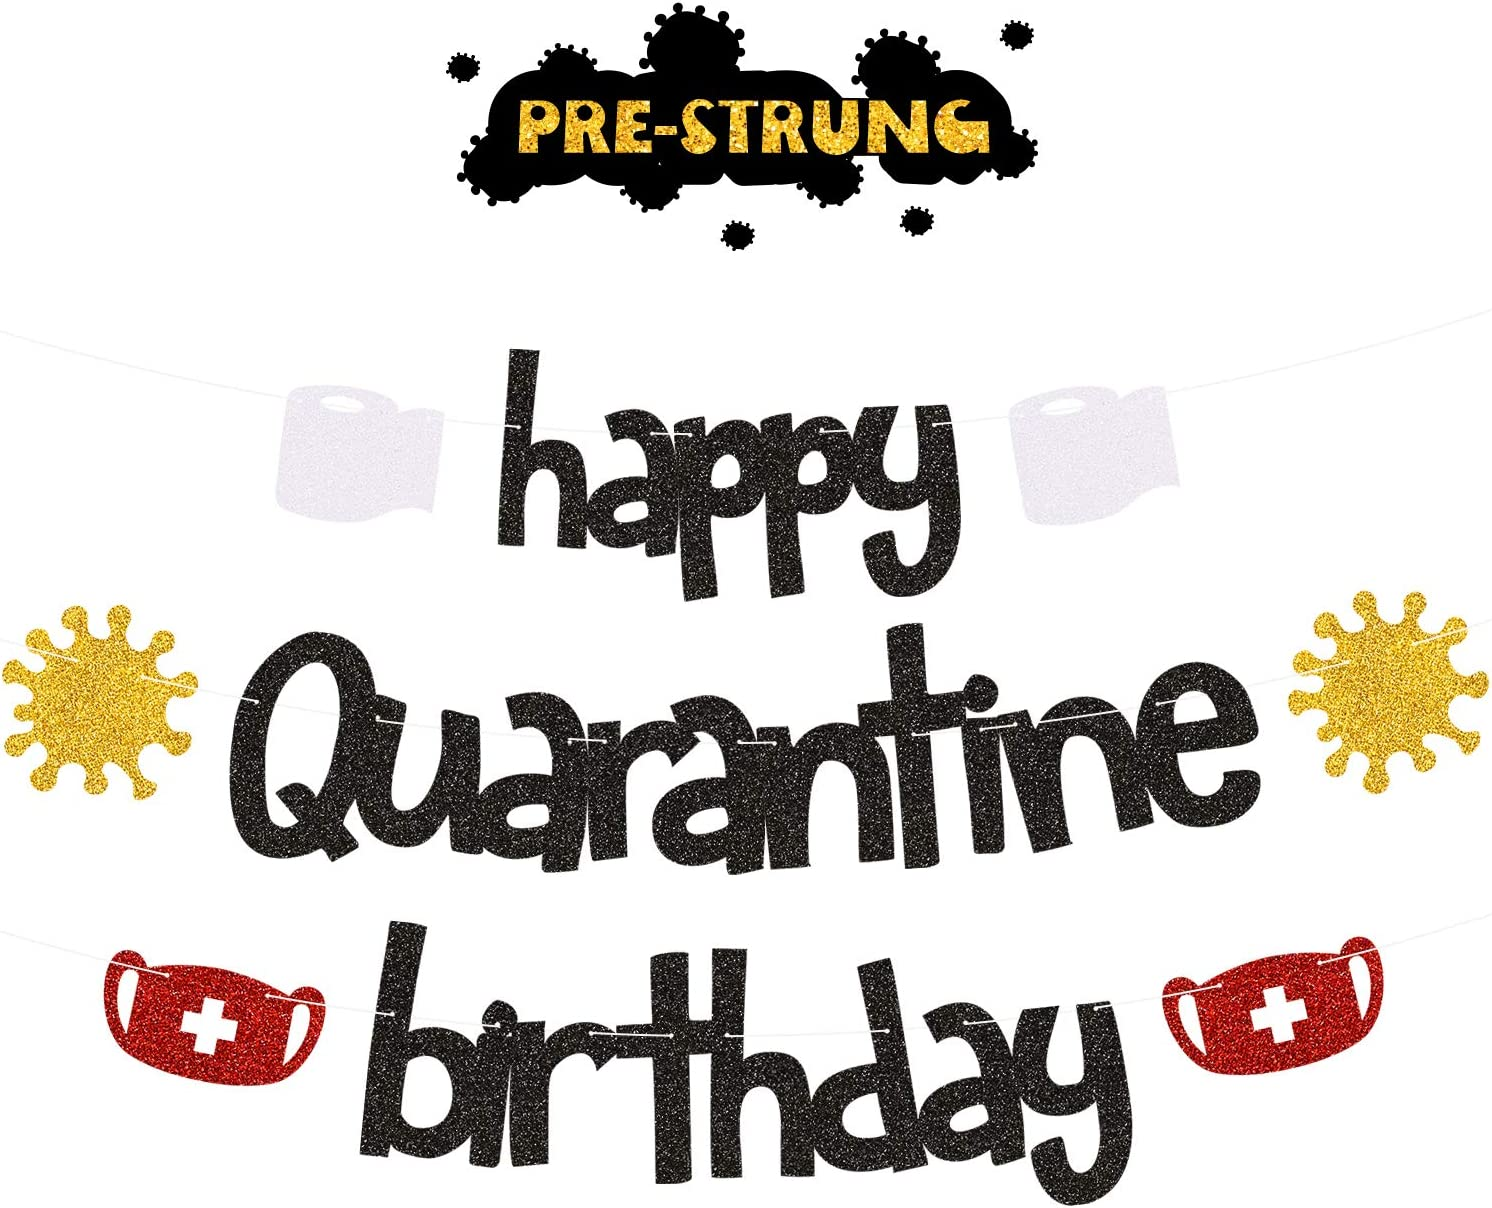 Stay Home Birthday Party Centerpiece Garland Decorations Happy Quarantine Birthday Banners Social Distancing Bday Lockdown Party Decor Supplies